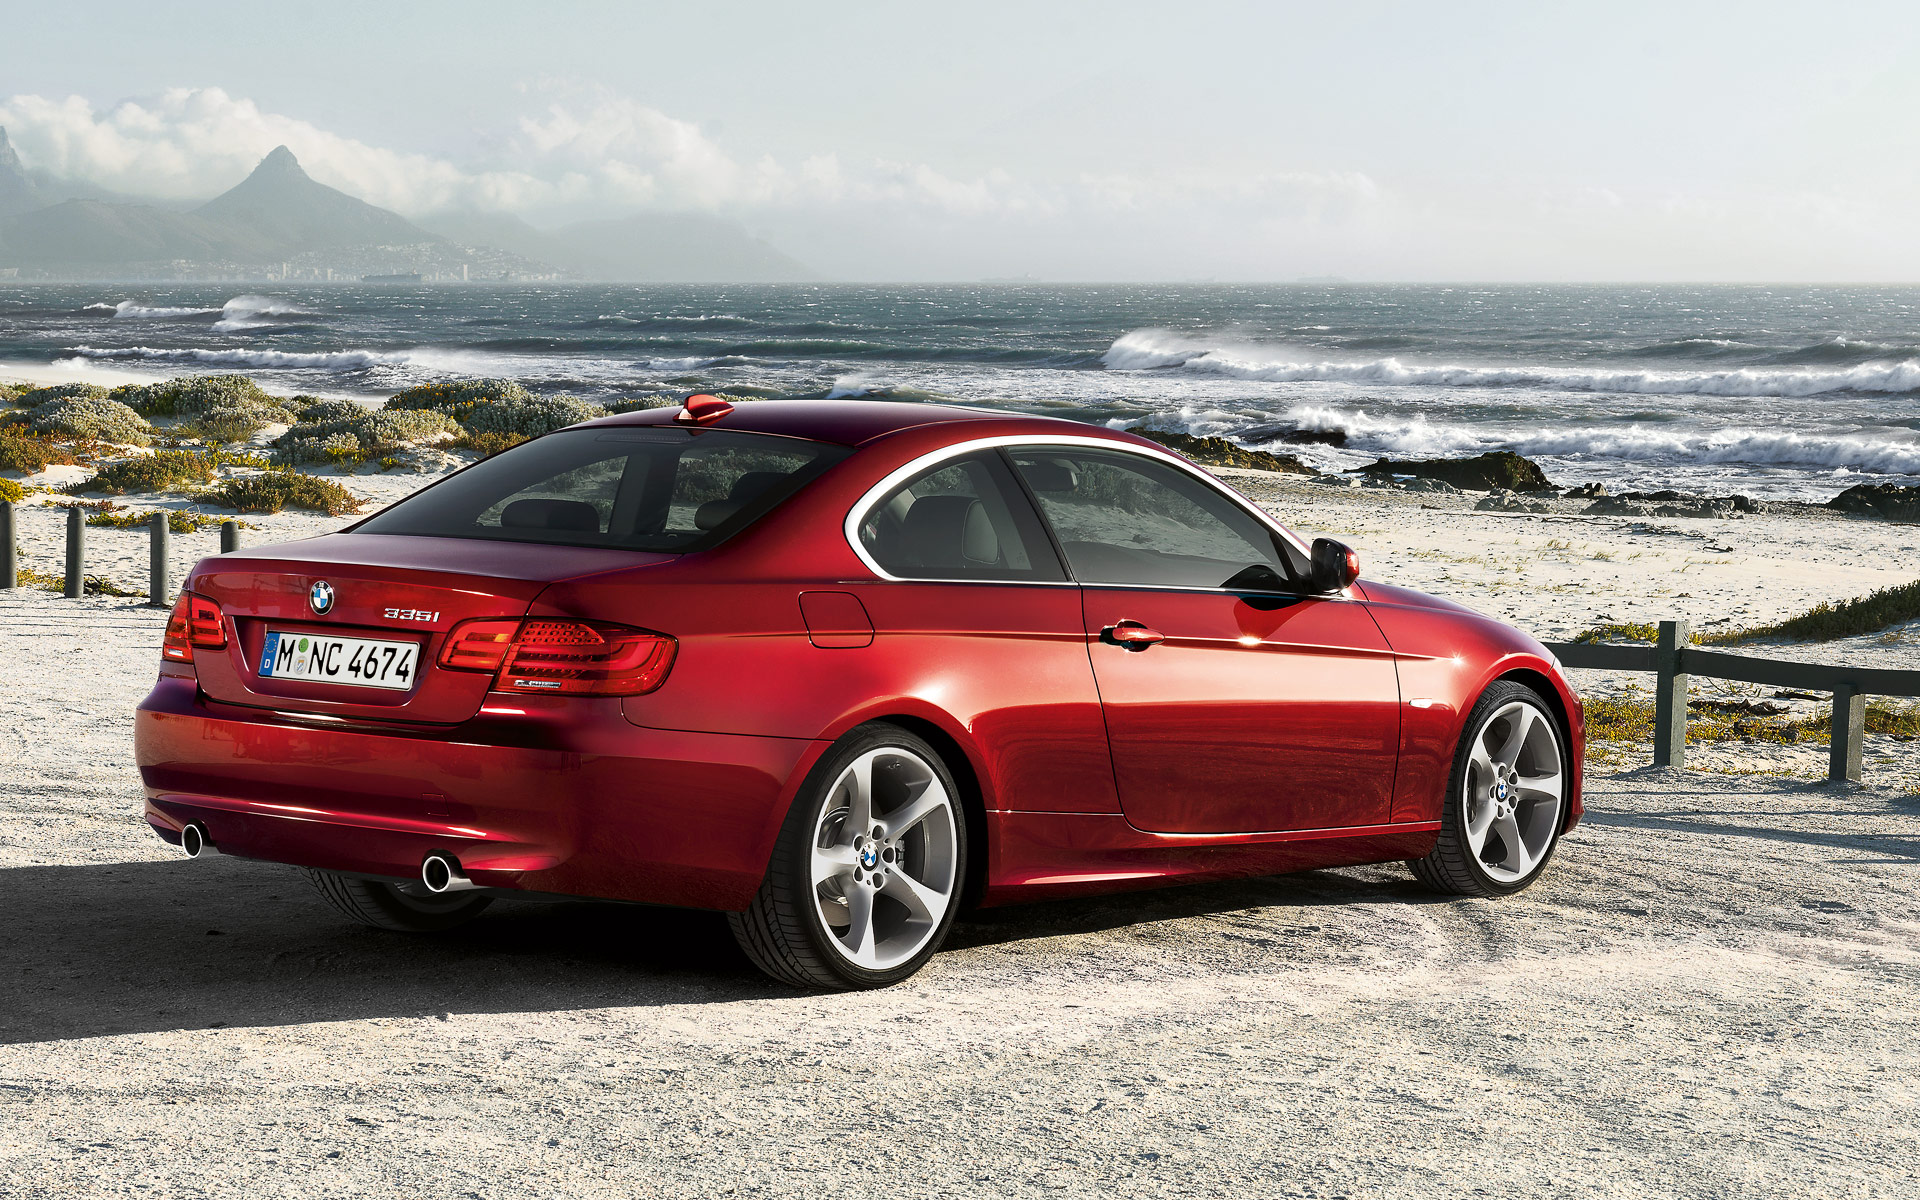 15 1920x1200 bmw 3series coupe1